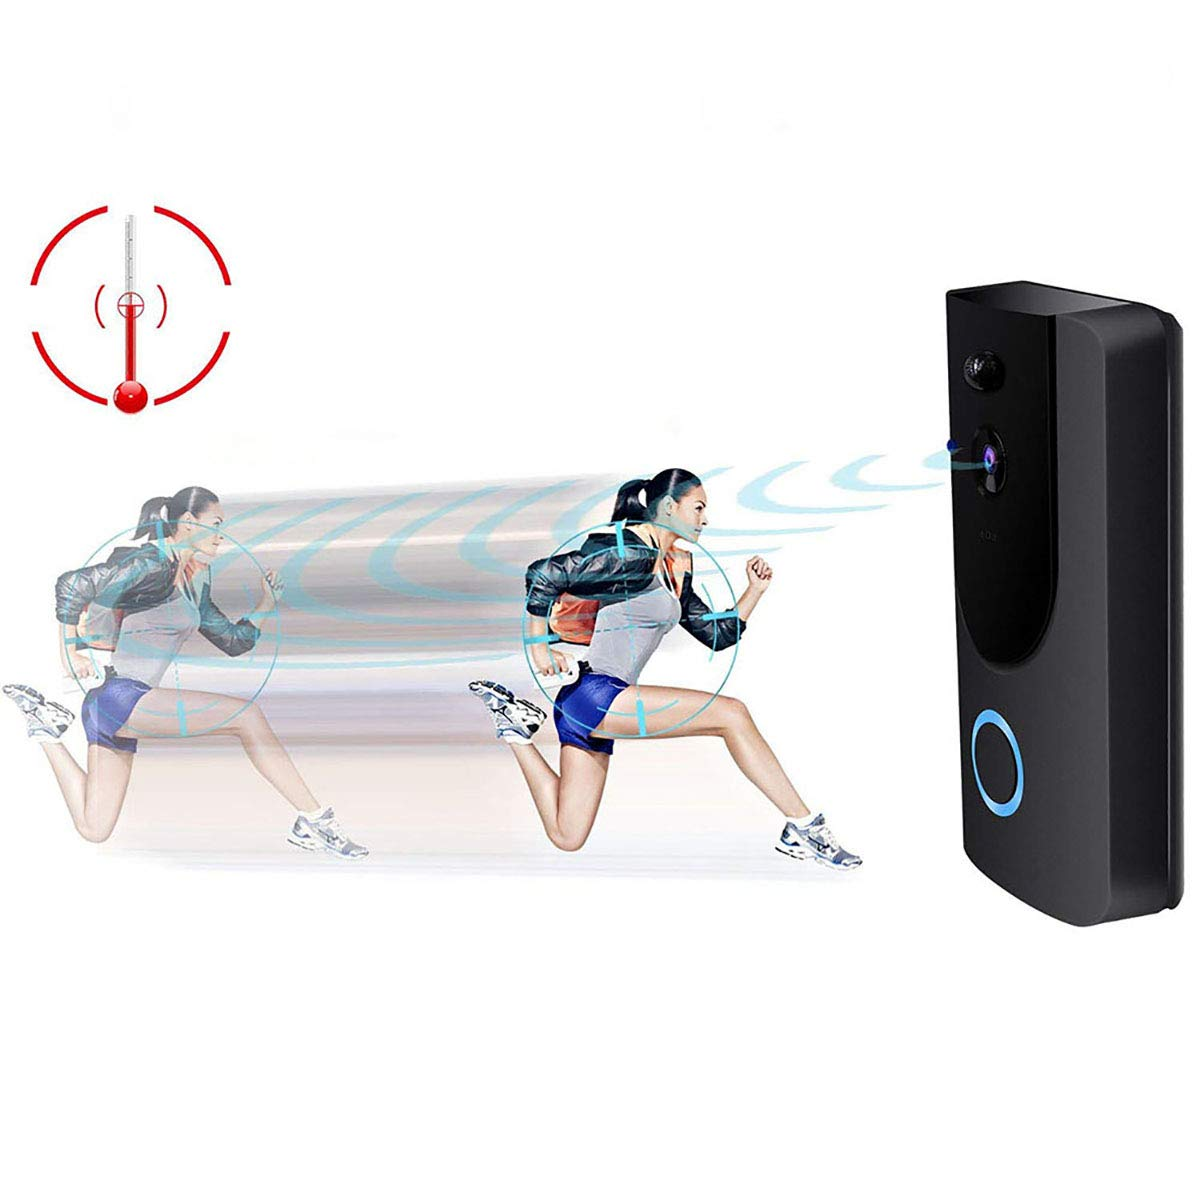 Video Doorbell,Visual Doorbell Camera 720P HD Wifi Security Camera with 16G TF Card, Chime and Battery,Real-Time Two-Way Talk, Night Vision,PIR Motion Detection,App Compatible for iPhone and Android by LeVcoecam (Image #6)